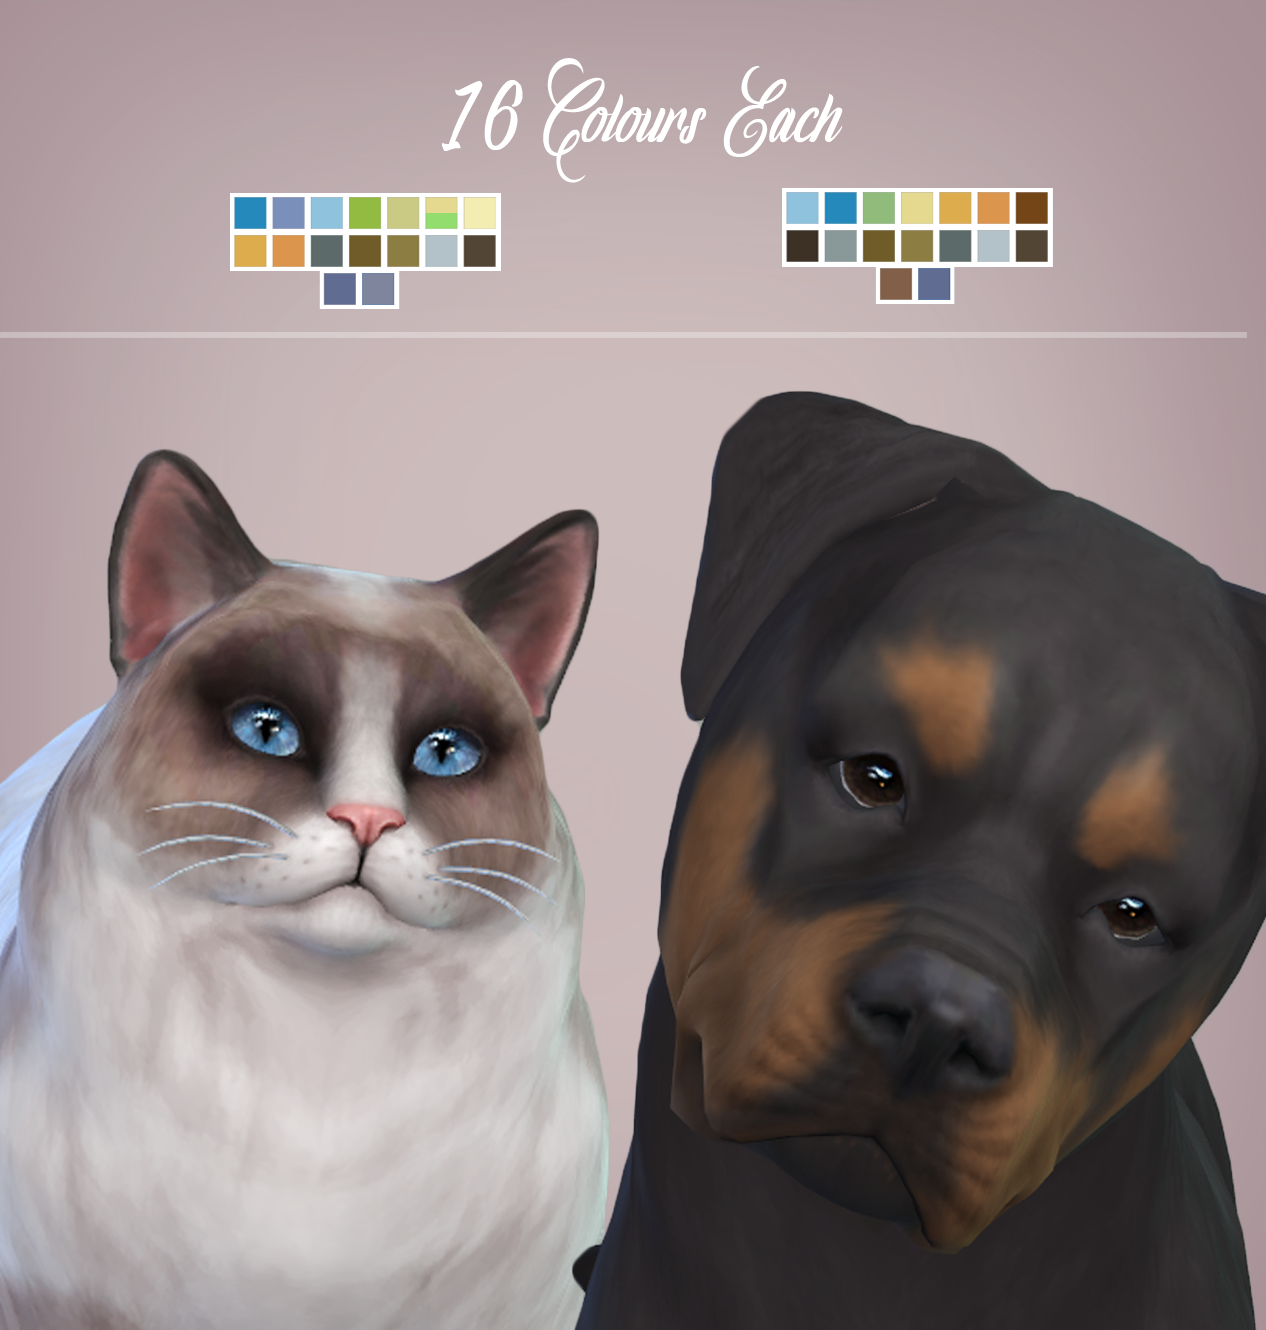 Lana Cc Finds Real Eyes Cats Dogs Sims Pets Sims 4 Pets